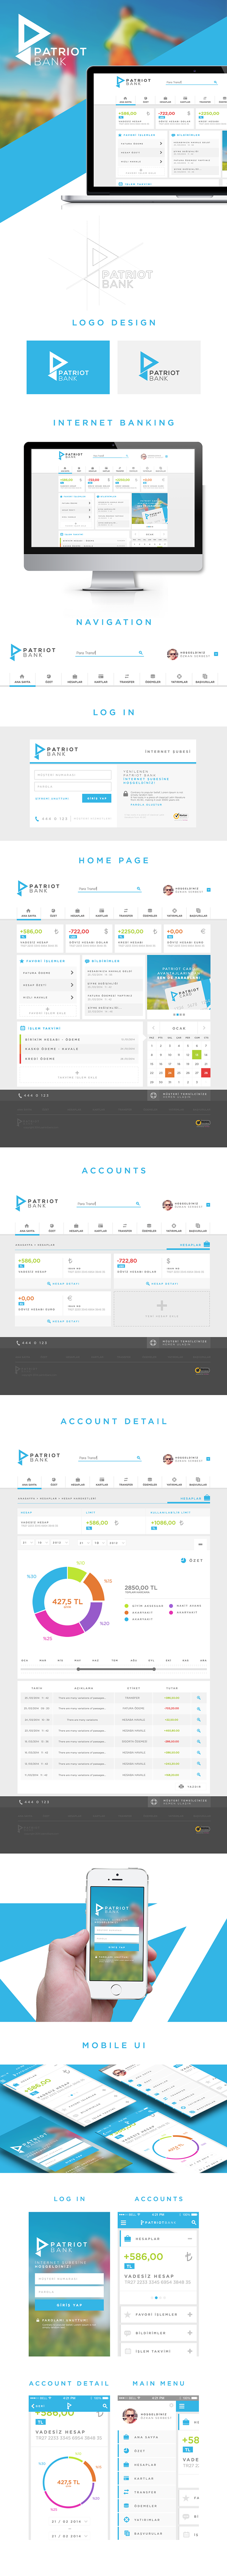 Online Banking UI Design (Personal Project) on Behance